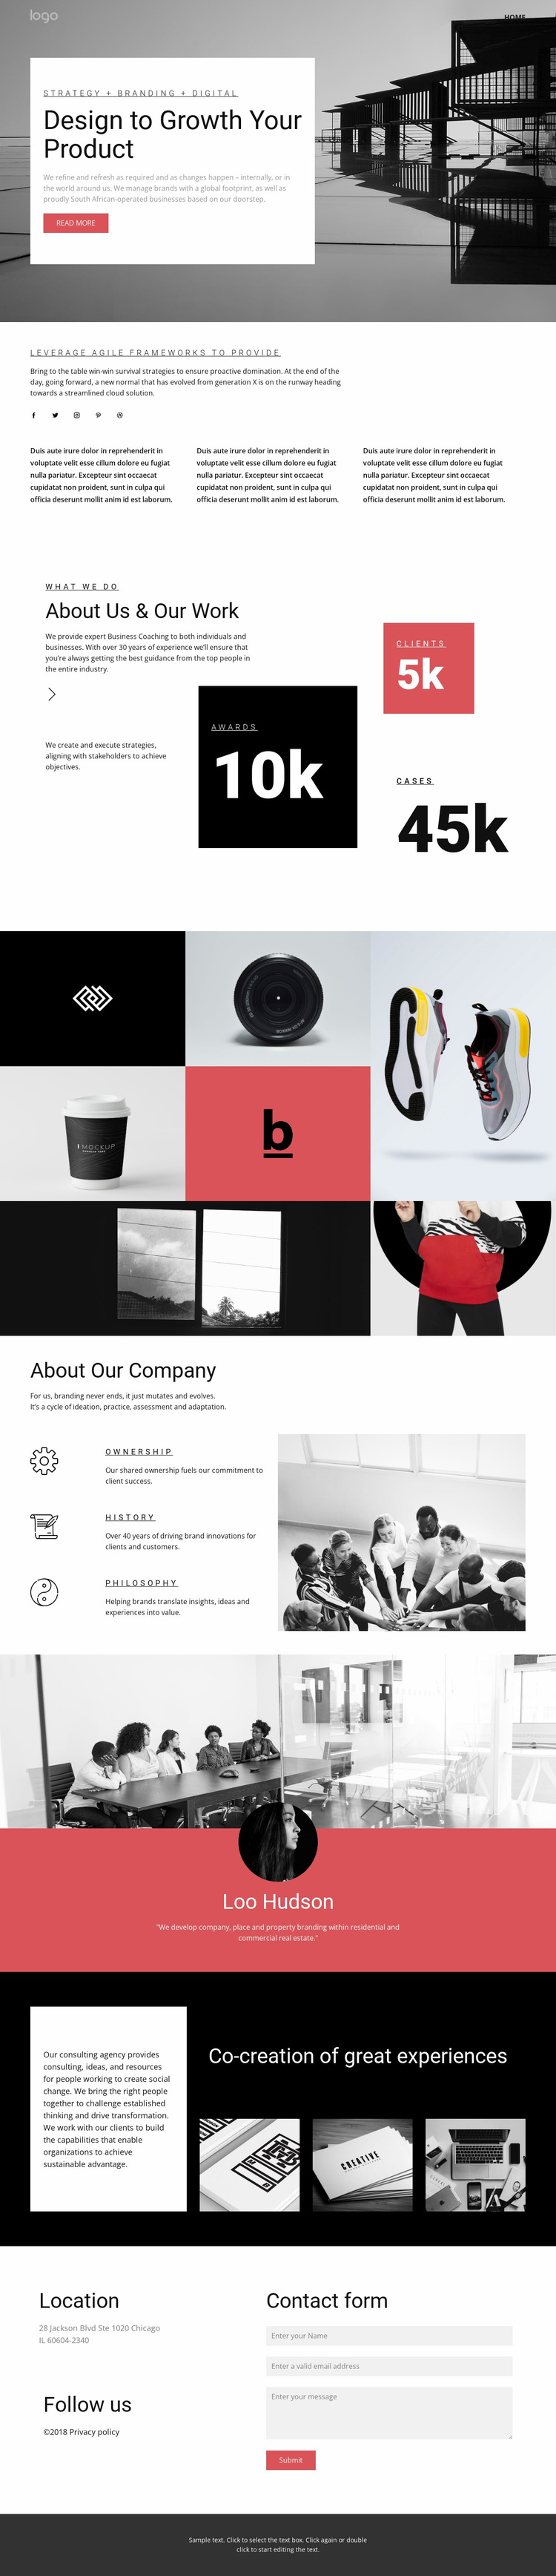 Business growth agency Website Design